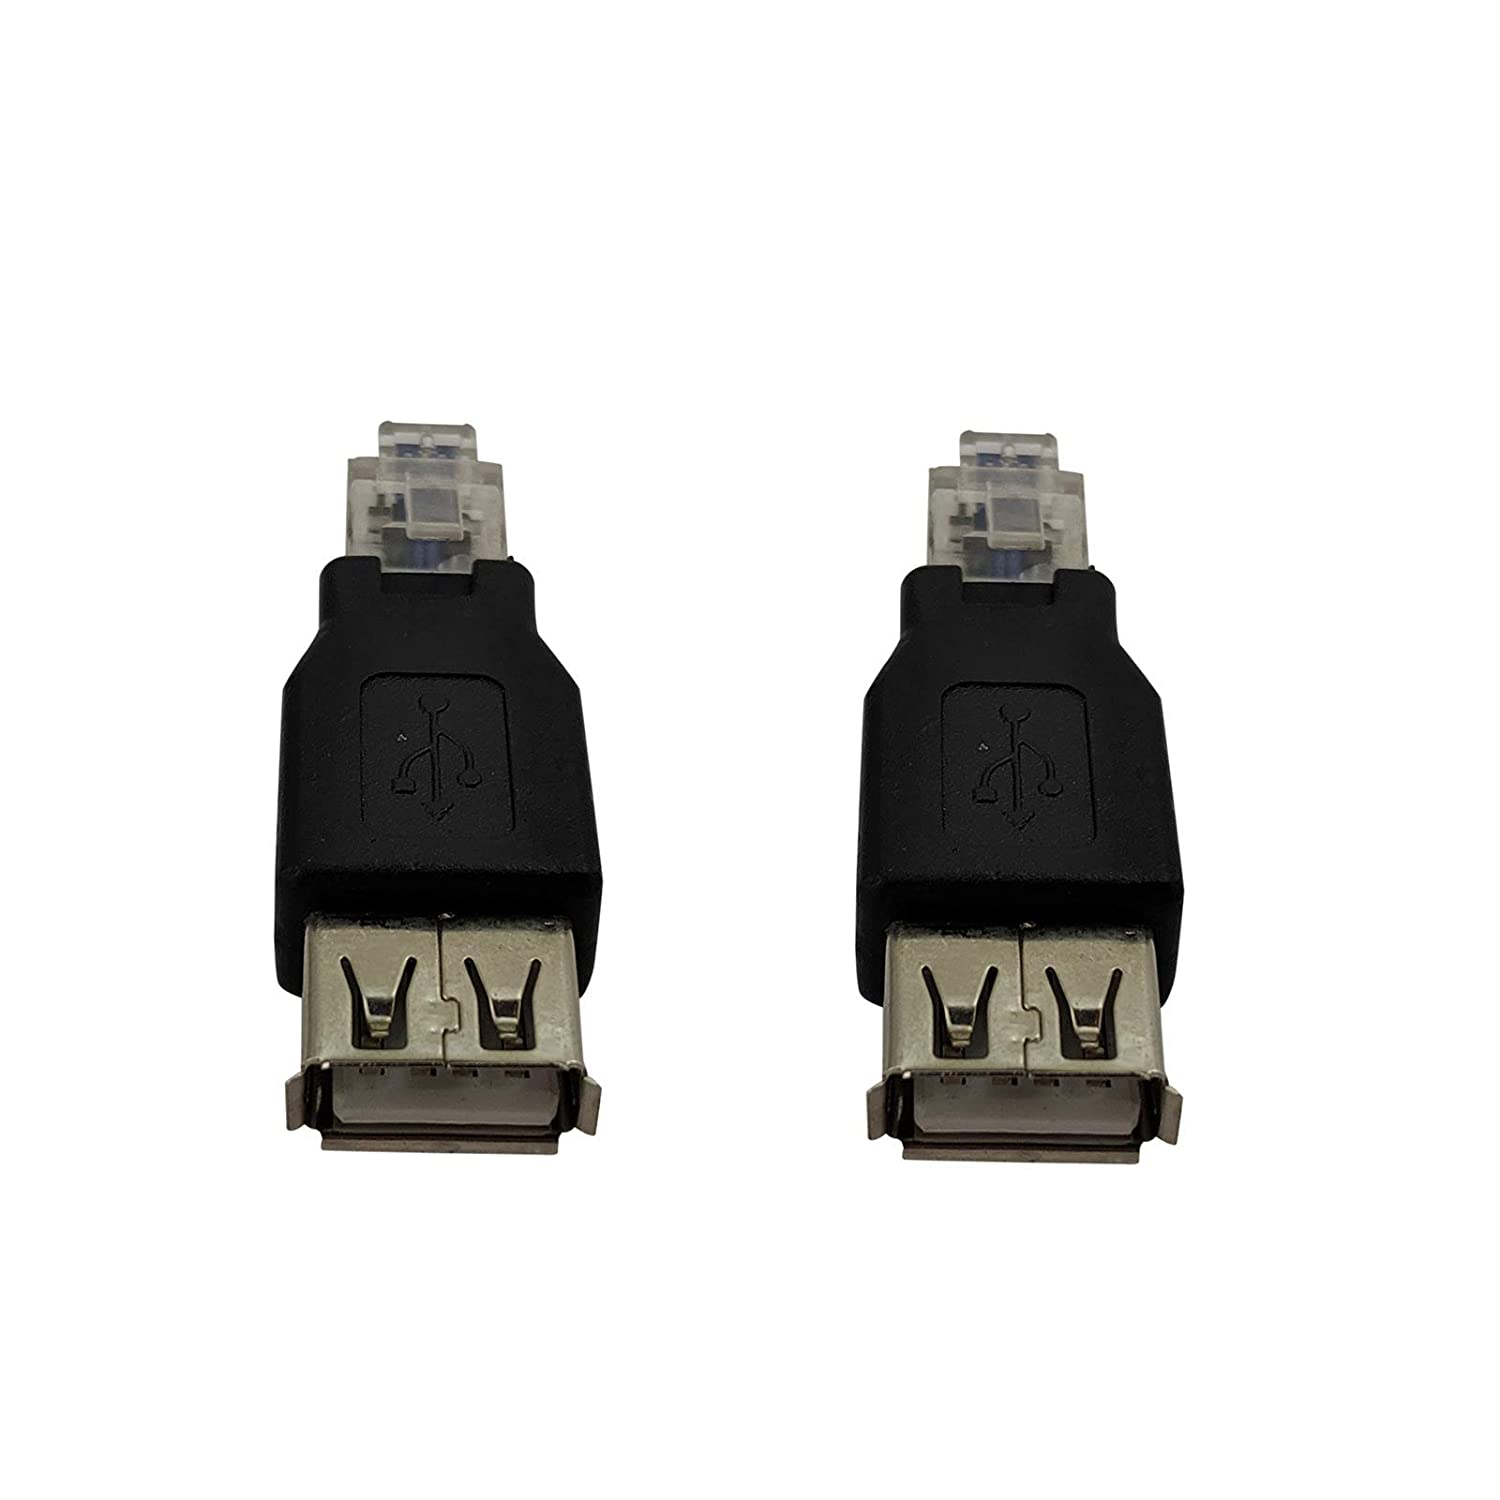 2 Pack USB A Female to RJ11 6P4C Adapter Converter Connector